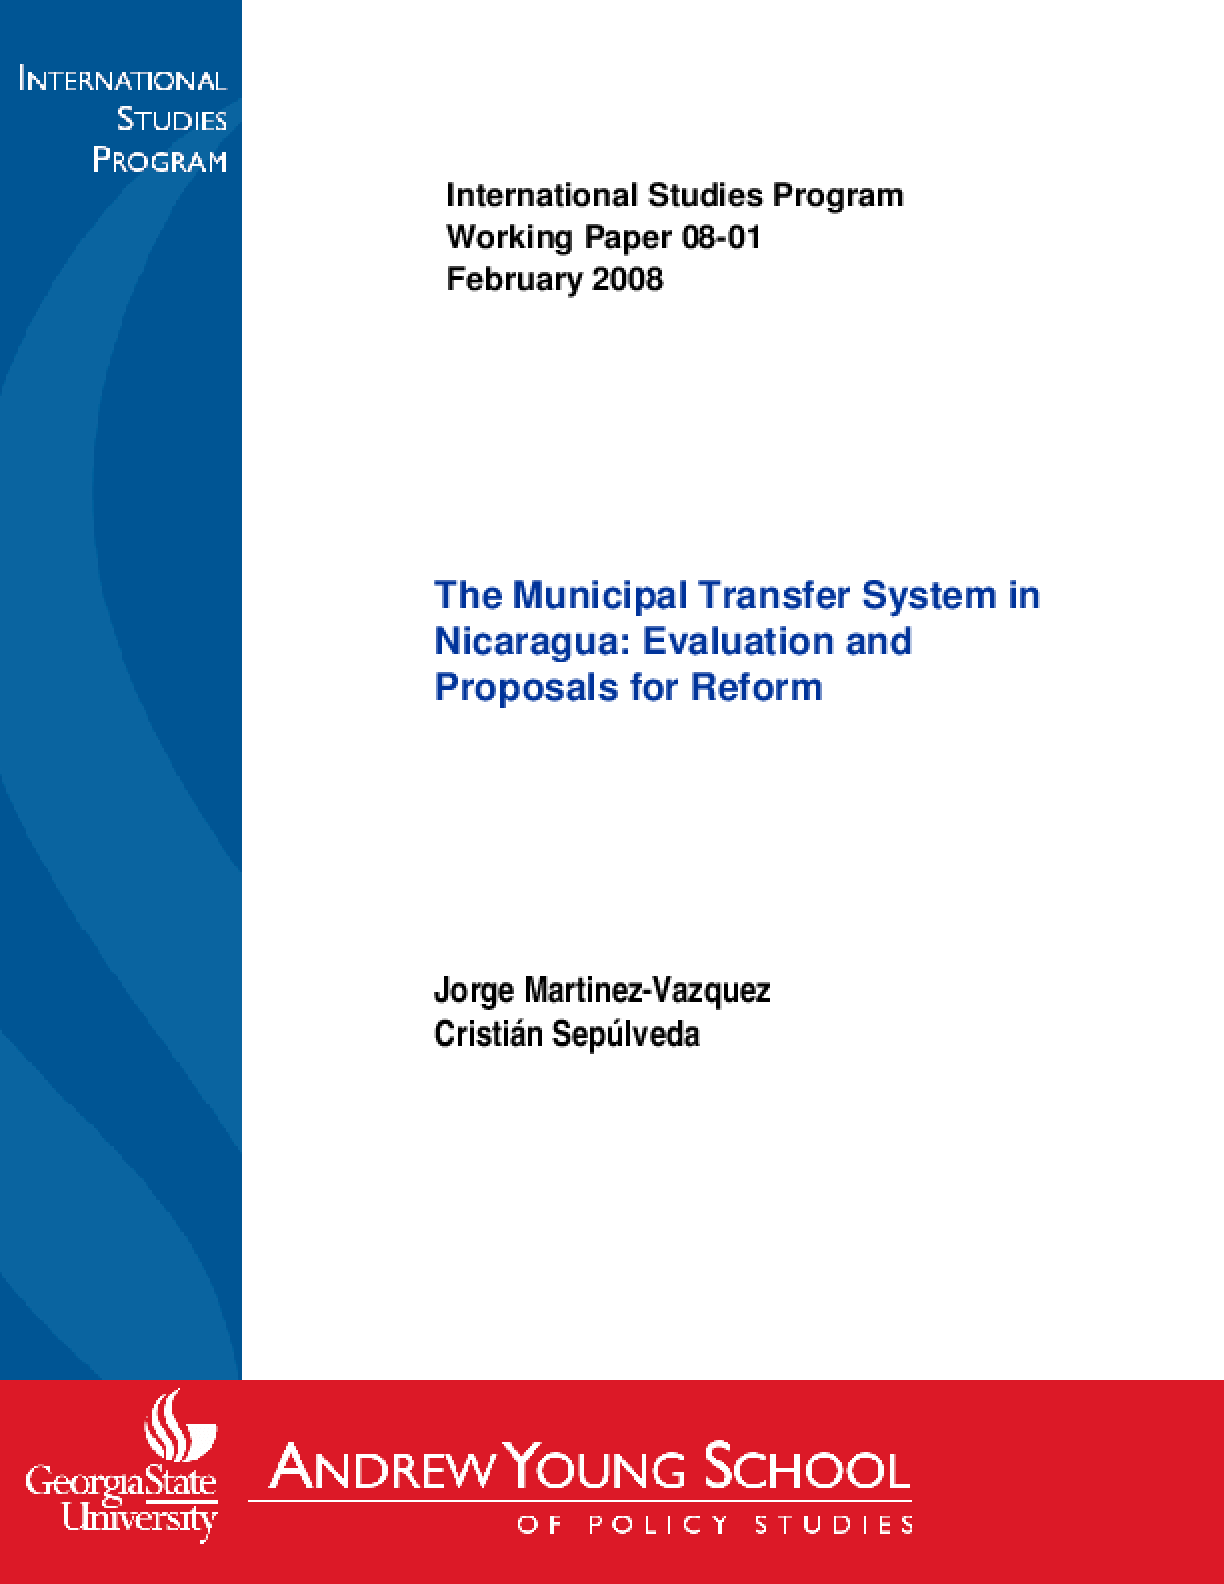 Municipal Transfer System in Nicaragua: Evaluation and Proposals for Reform, The (Updated)